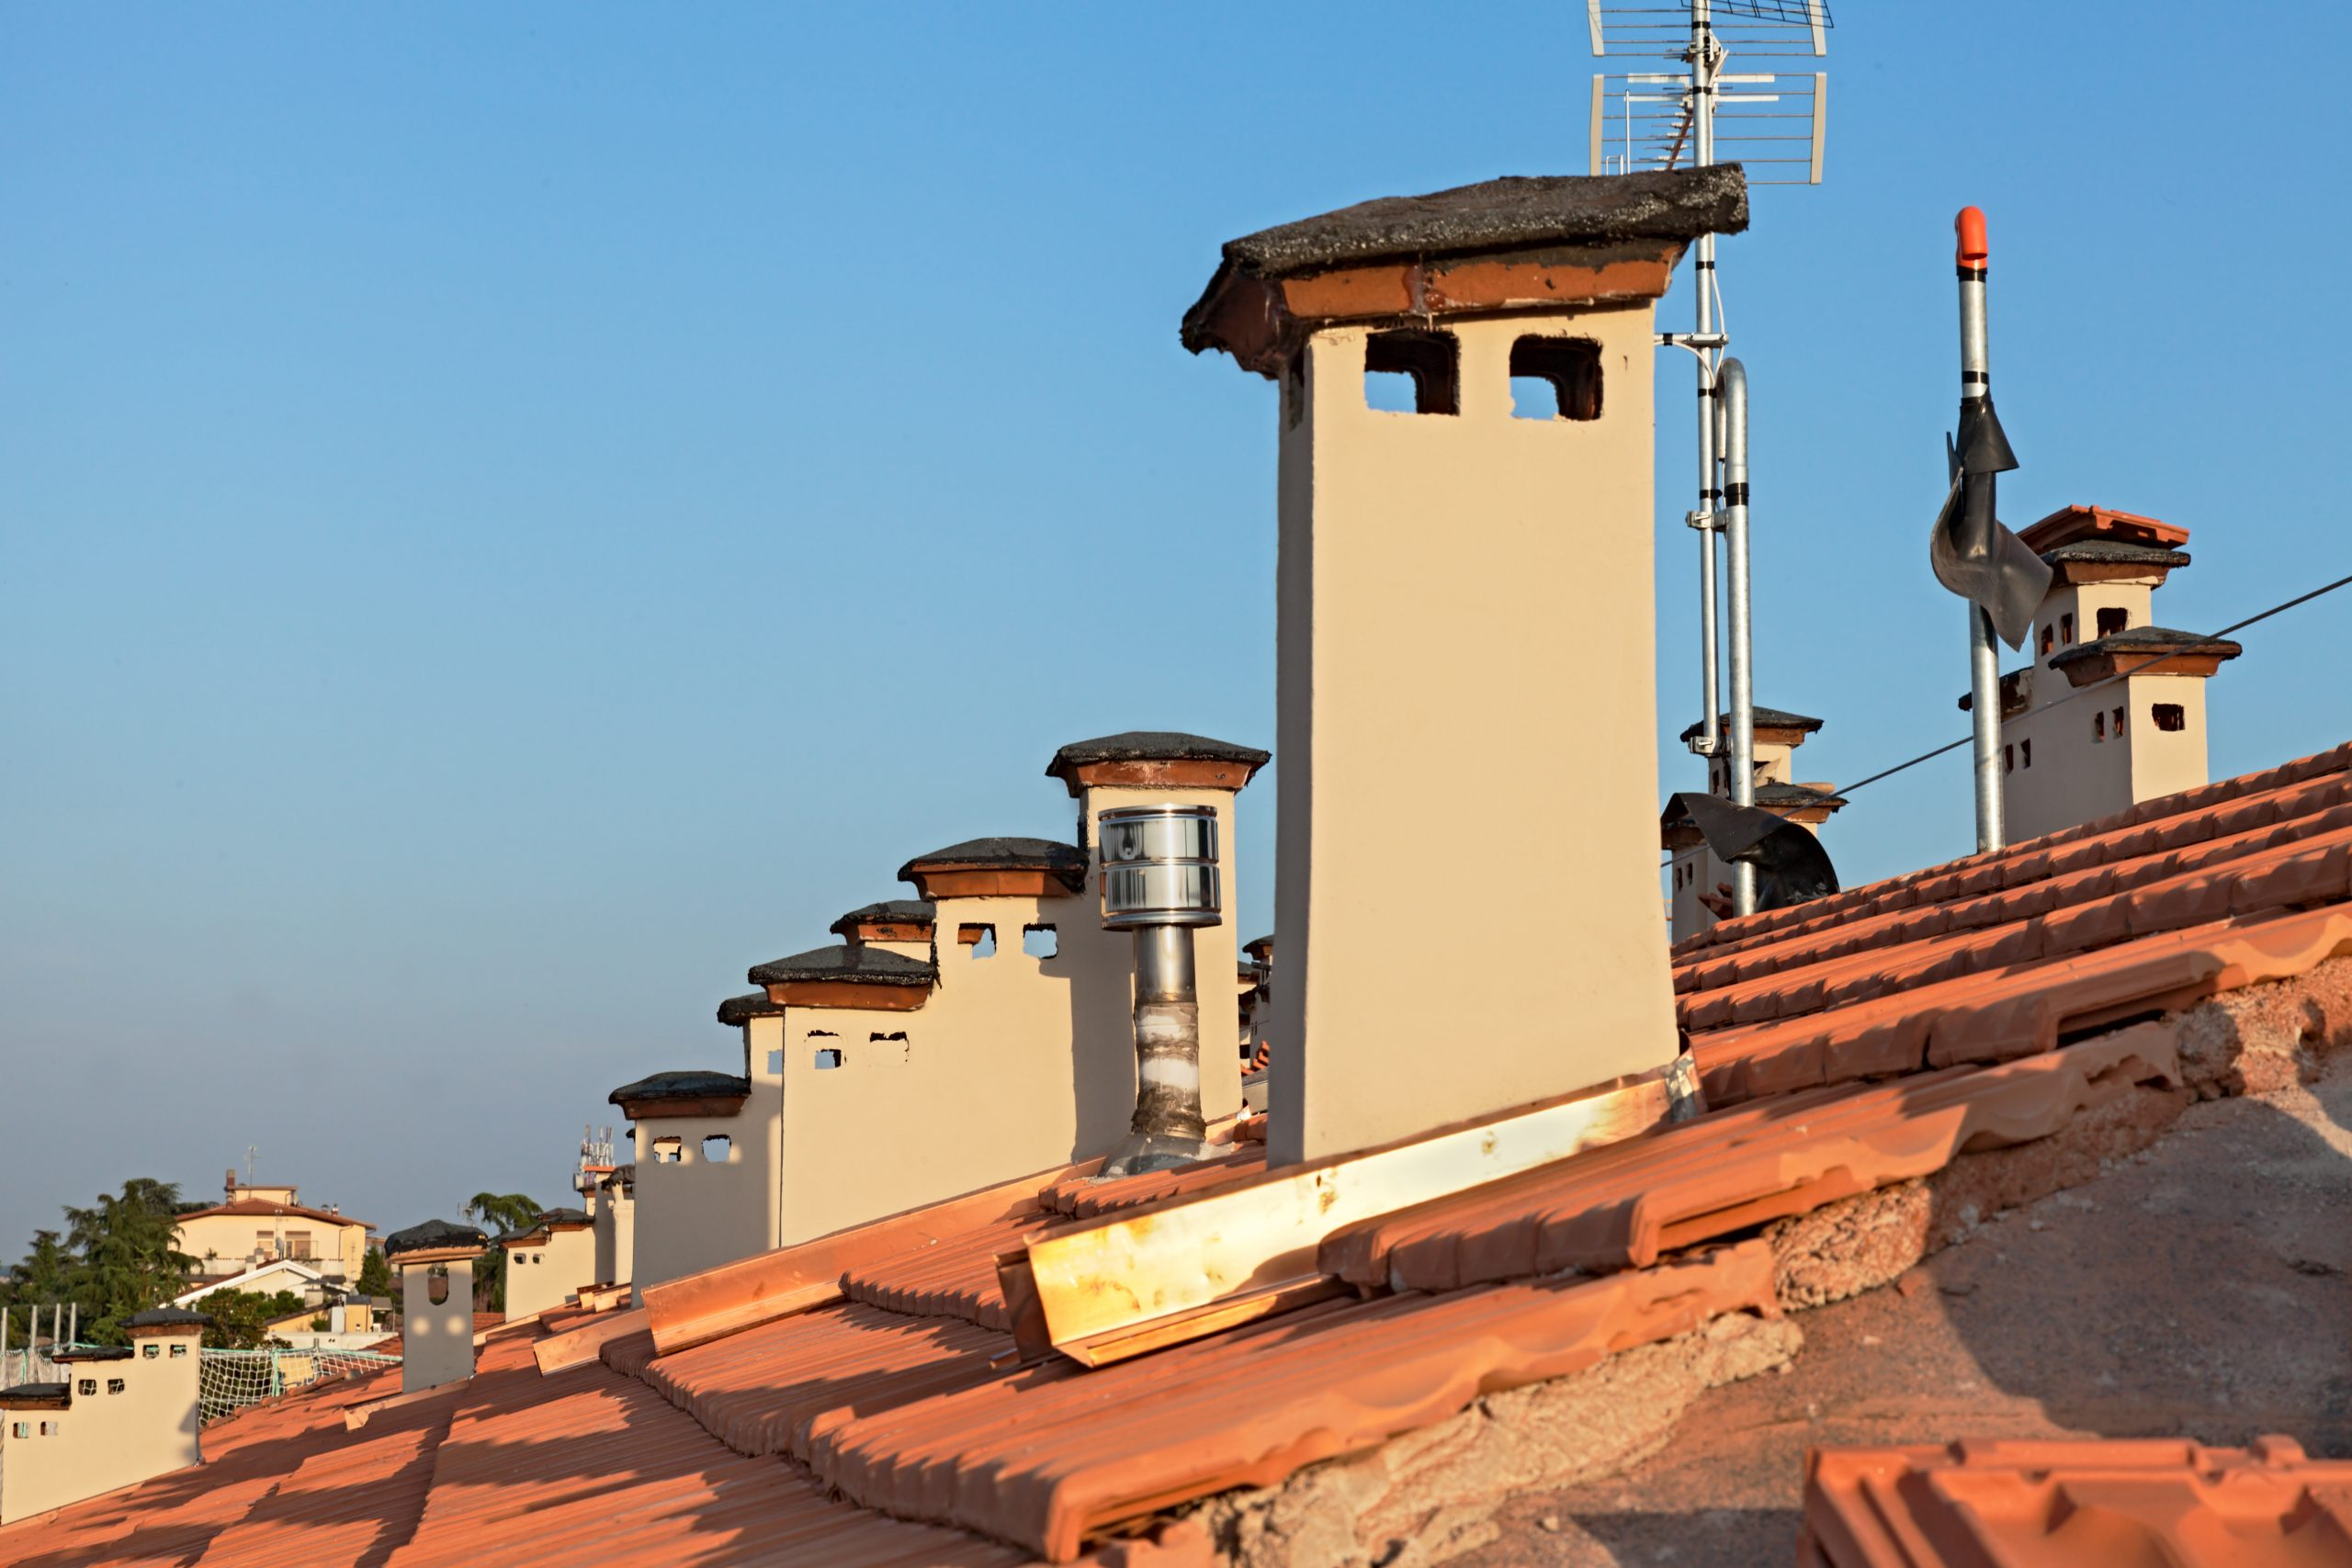 row of chimneys on the rooftop of a building - roof renovation: installation of new tiles and chimney